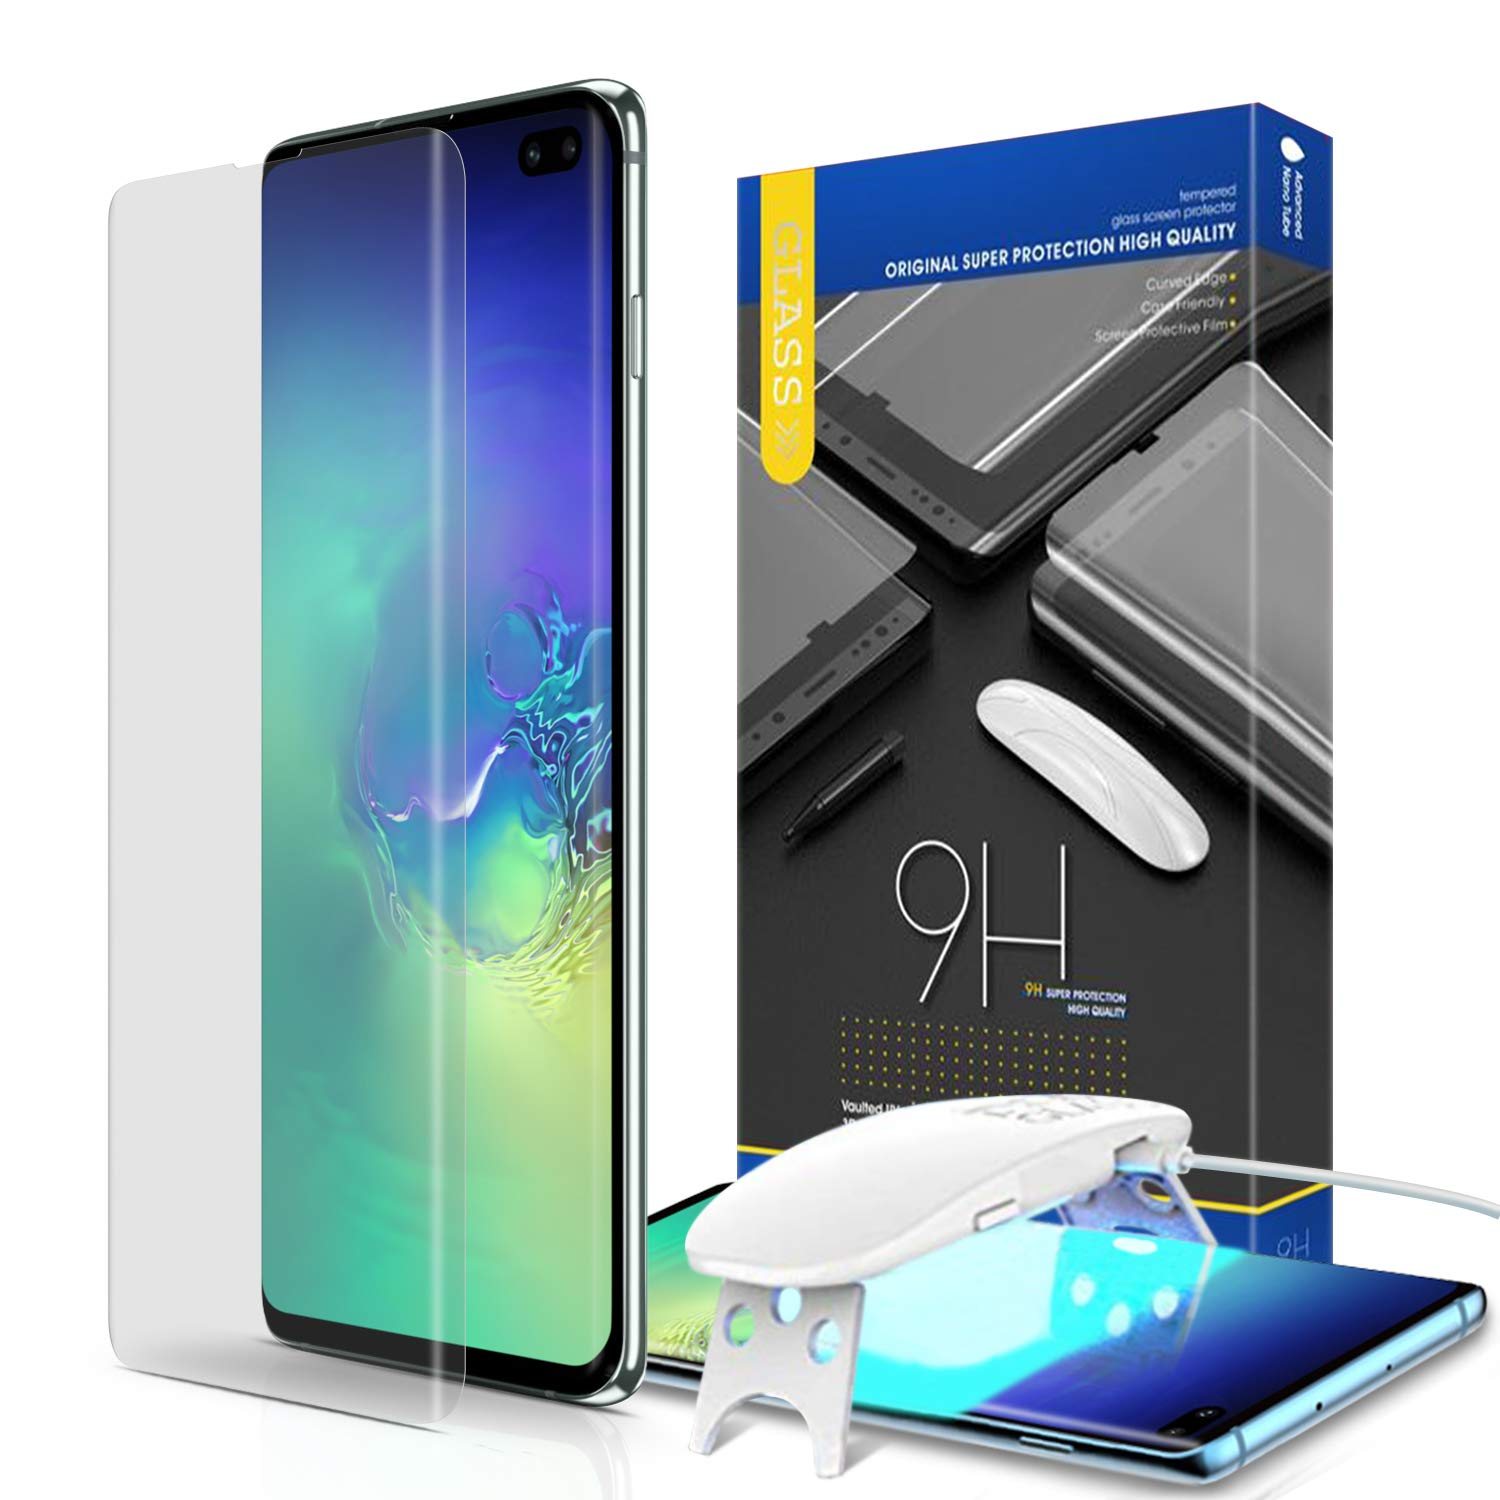 Galaxy S10 Plus Screen Protector, [SMAPP] Full 3D Curved Edge Tempered Glass for Samsung Galaxy S10 Plus (2019) - 2 Pack [Solution for Fingerprint Sensor on Glass] Liquid Installation